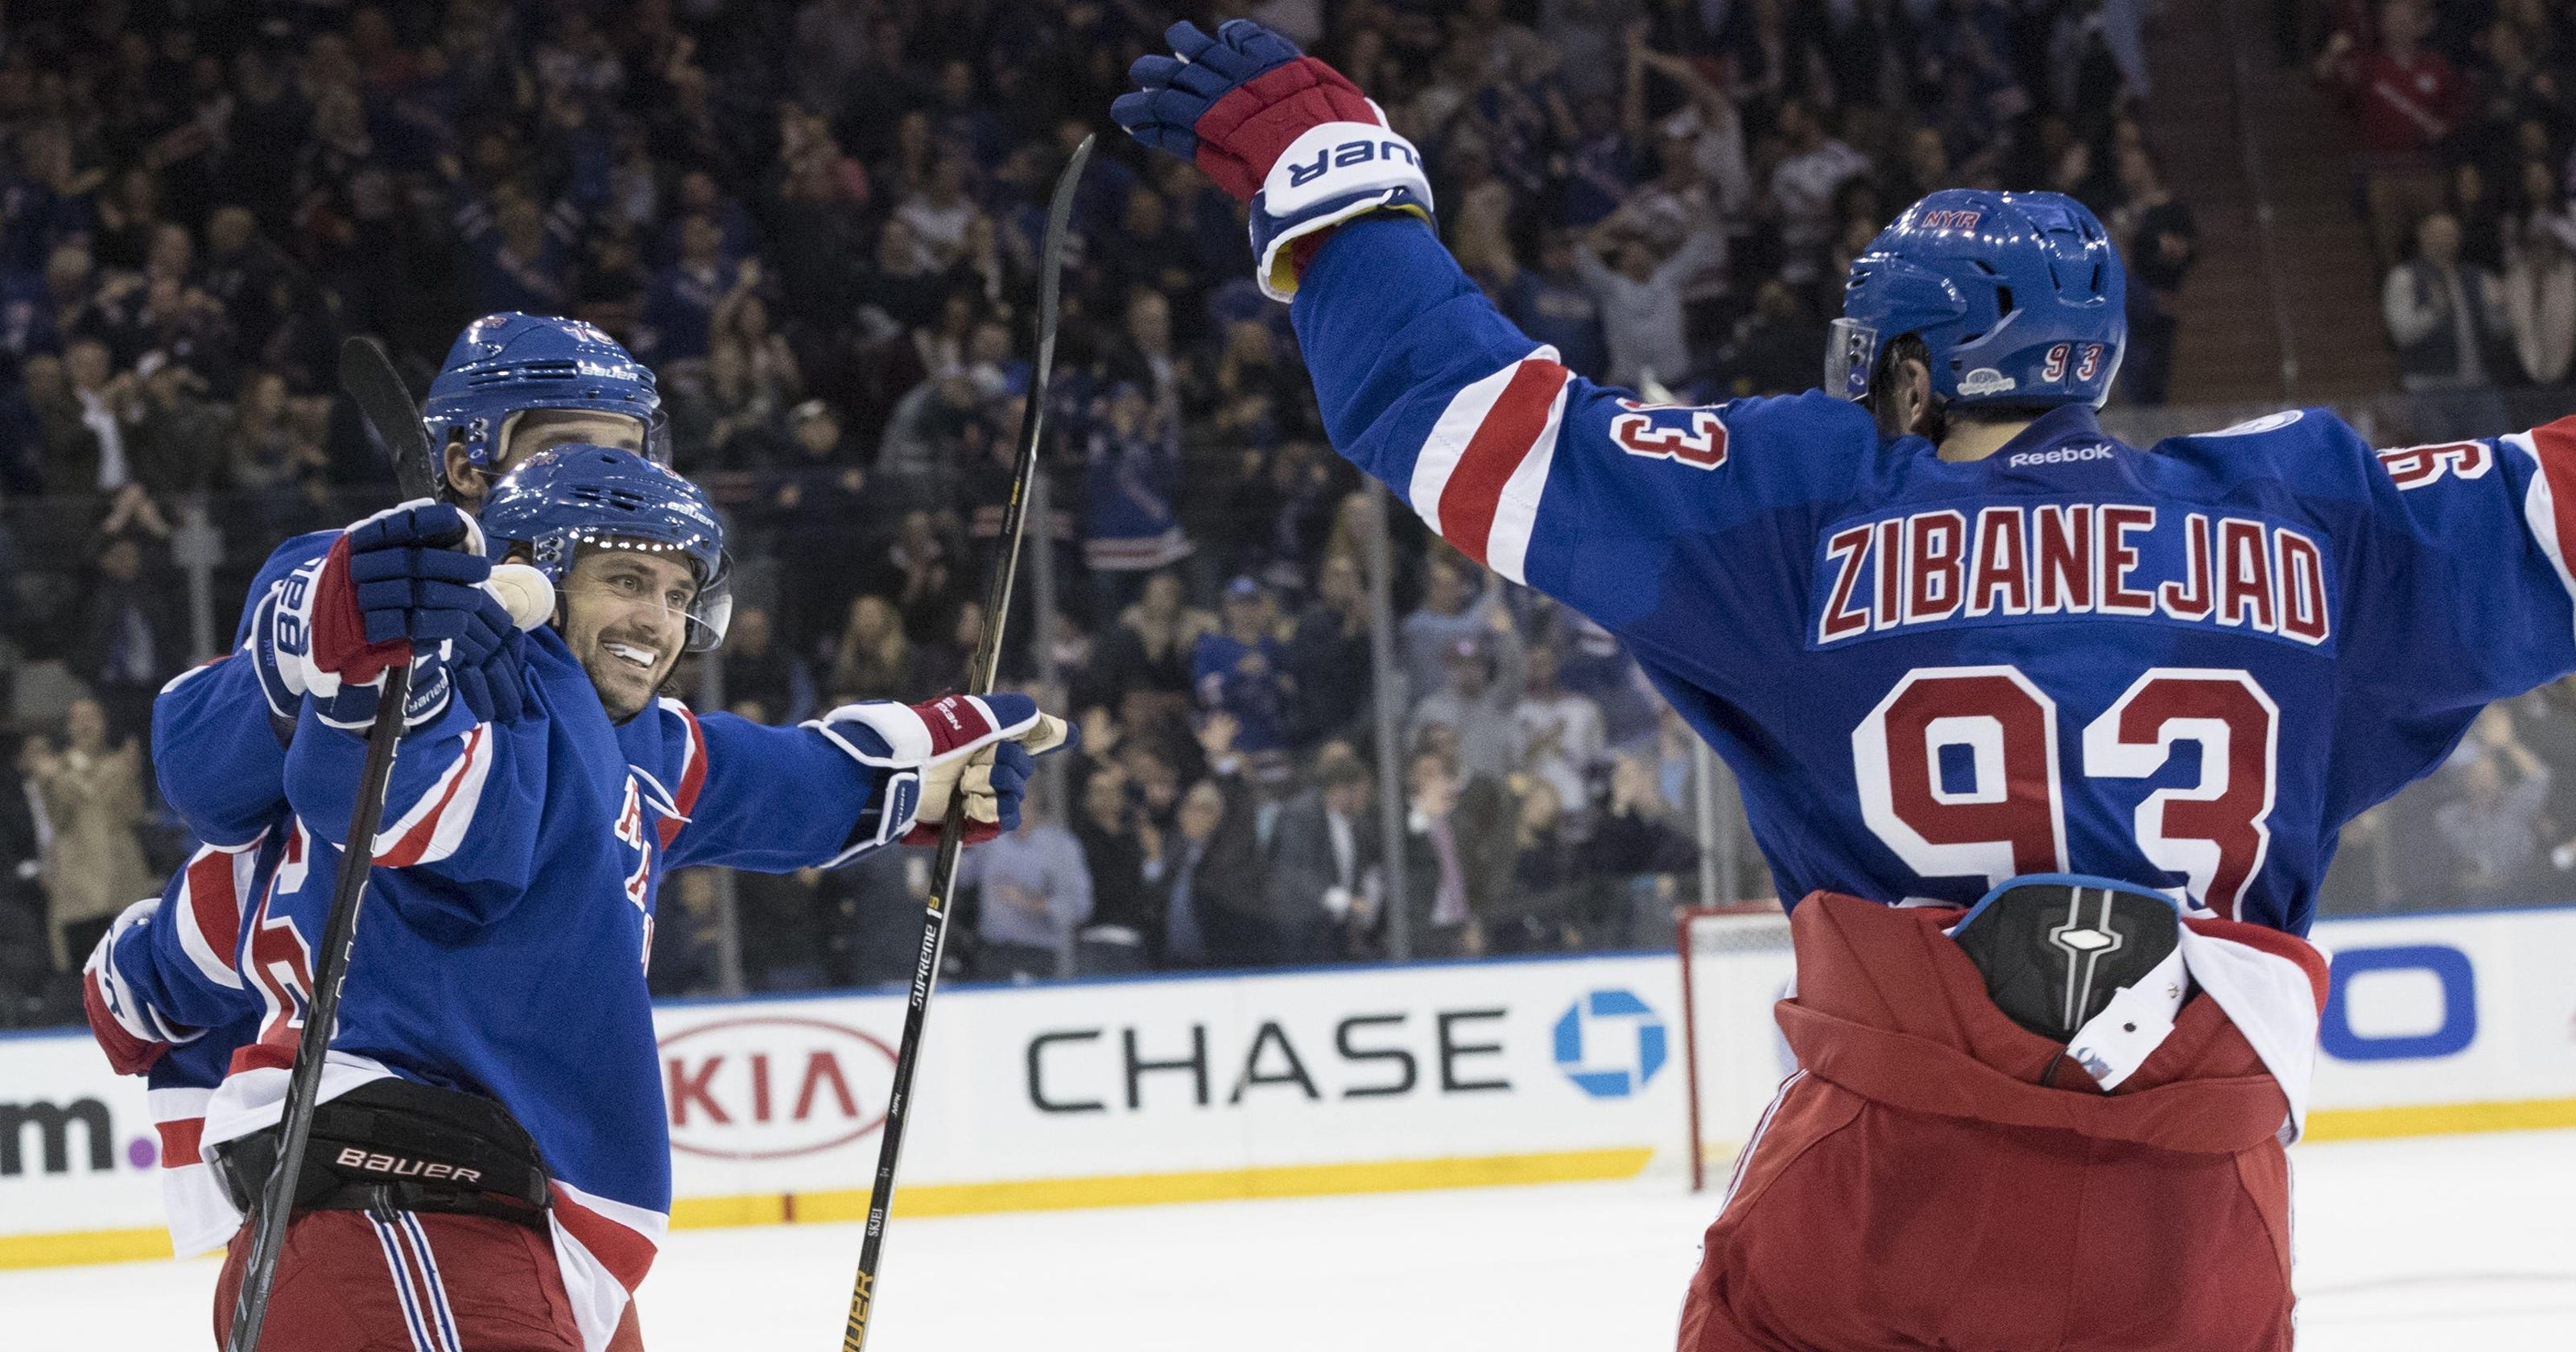 New faces lead Rangers over Islanders 4c2235e26